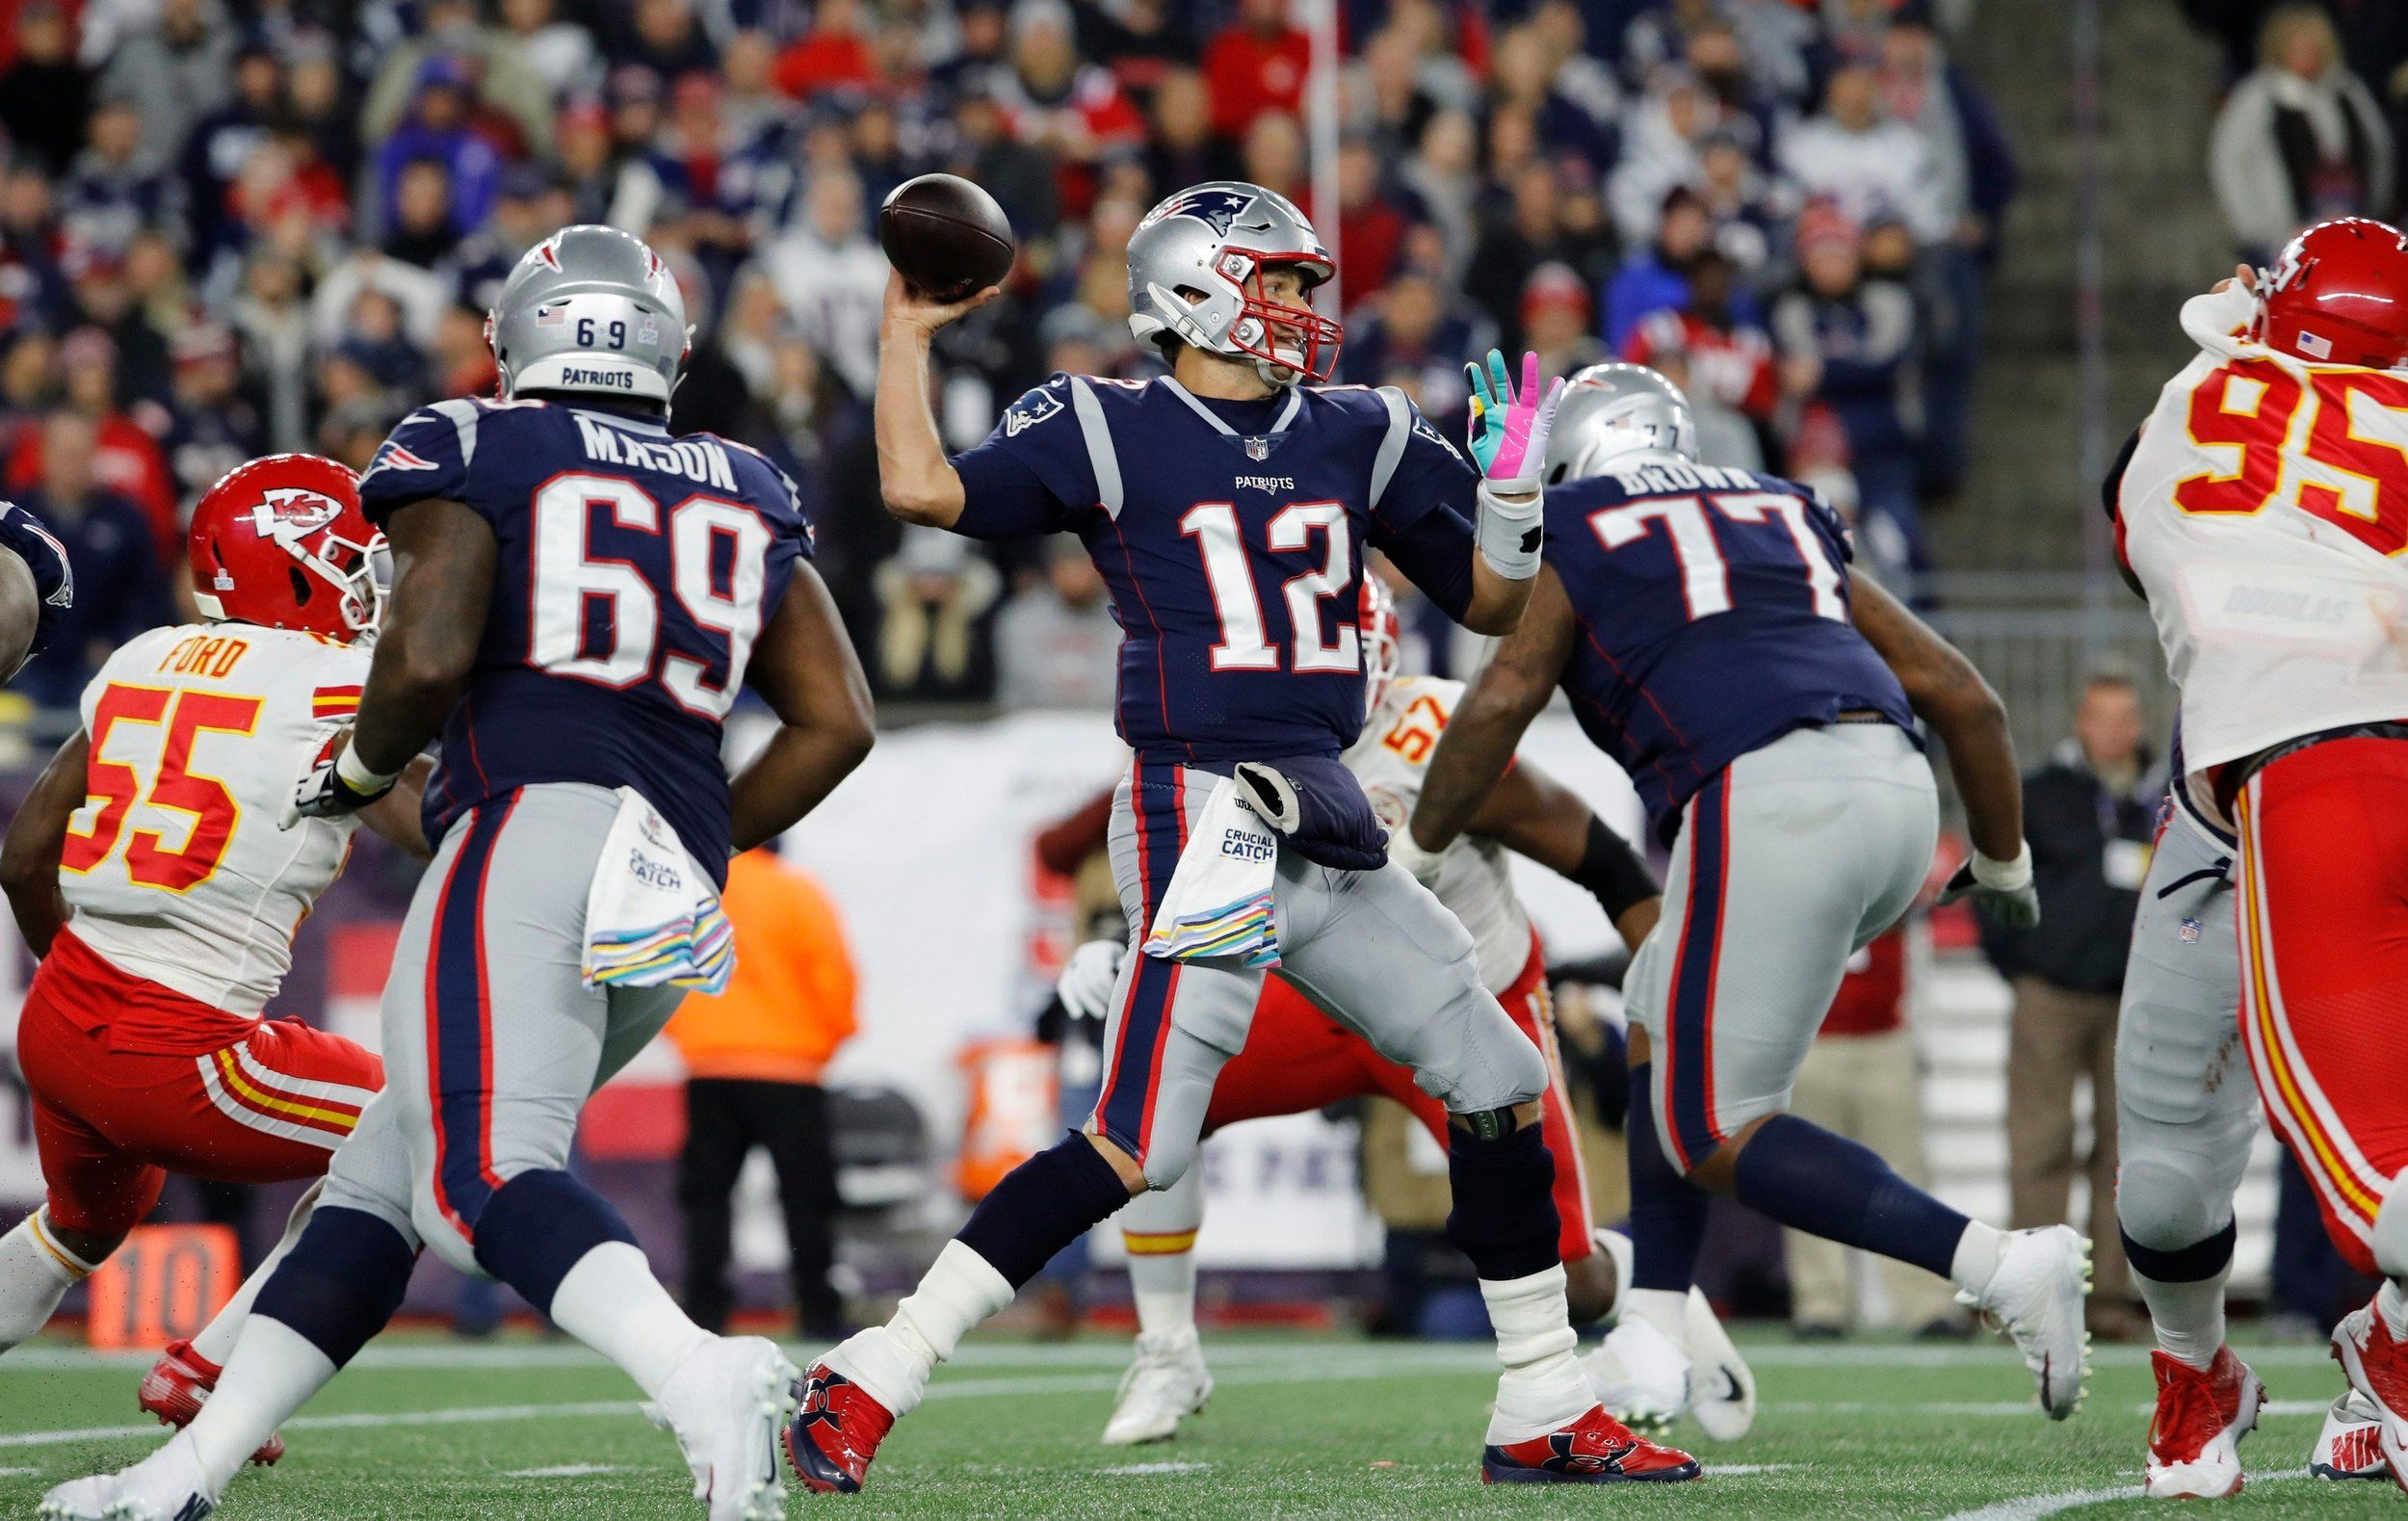 Afc Championship Game Preview Championship Game Nfl News Afc Championship